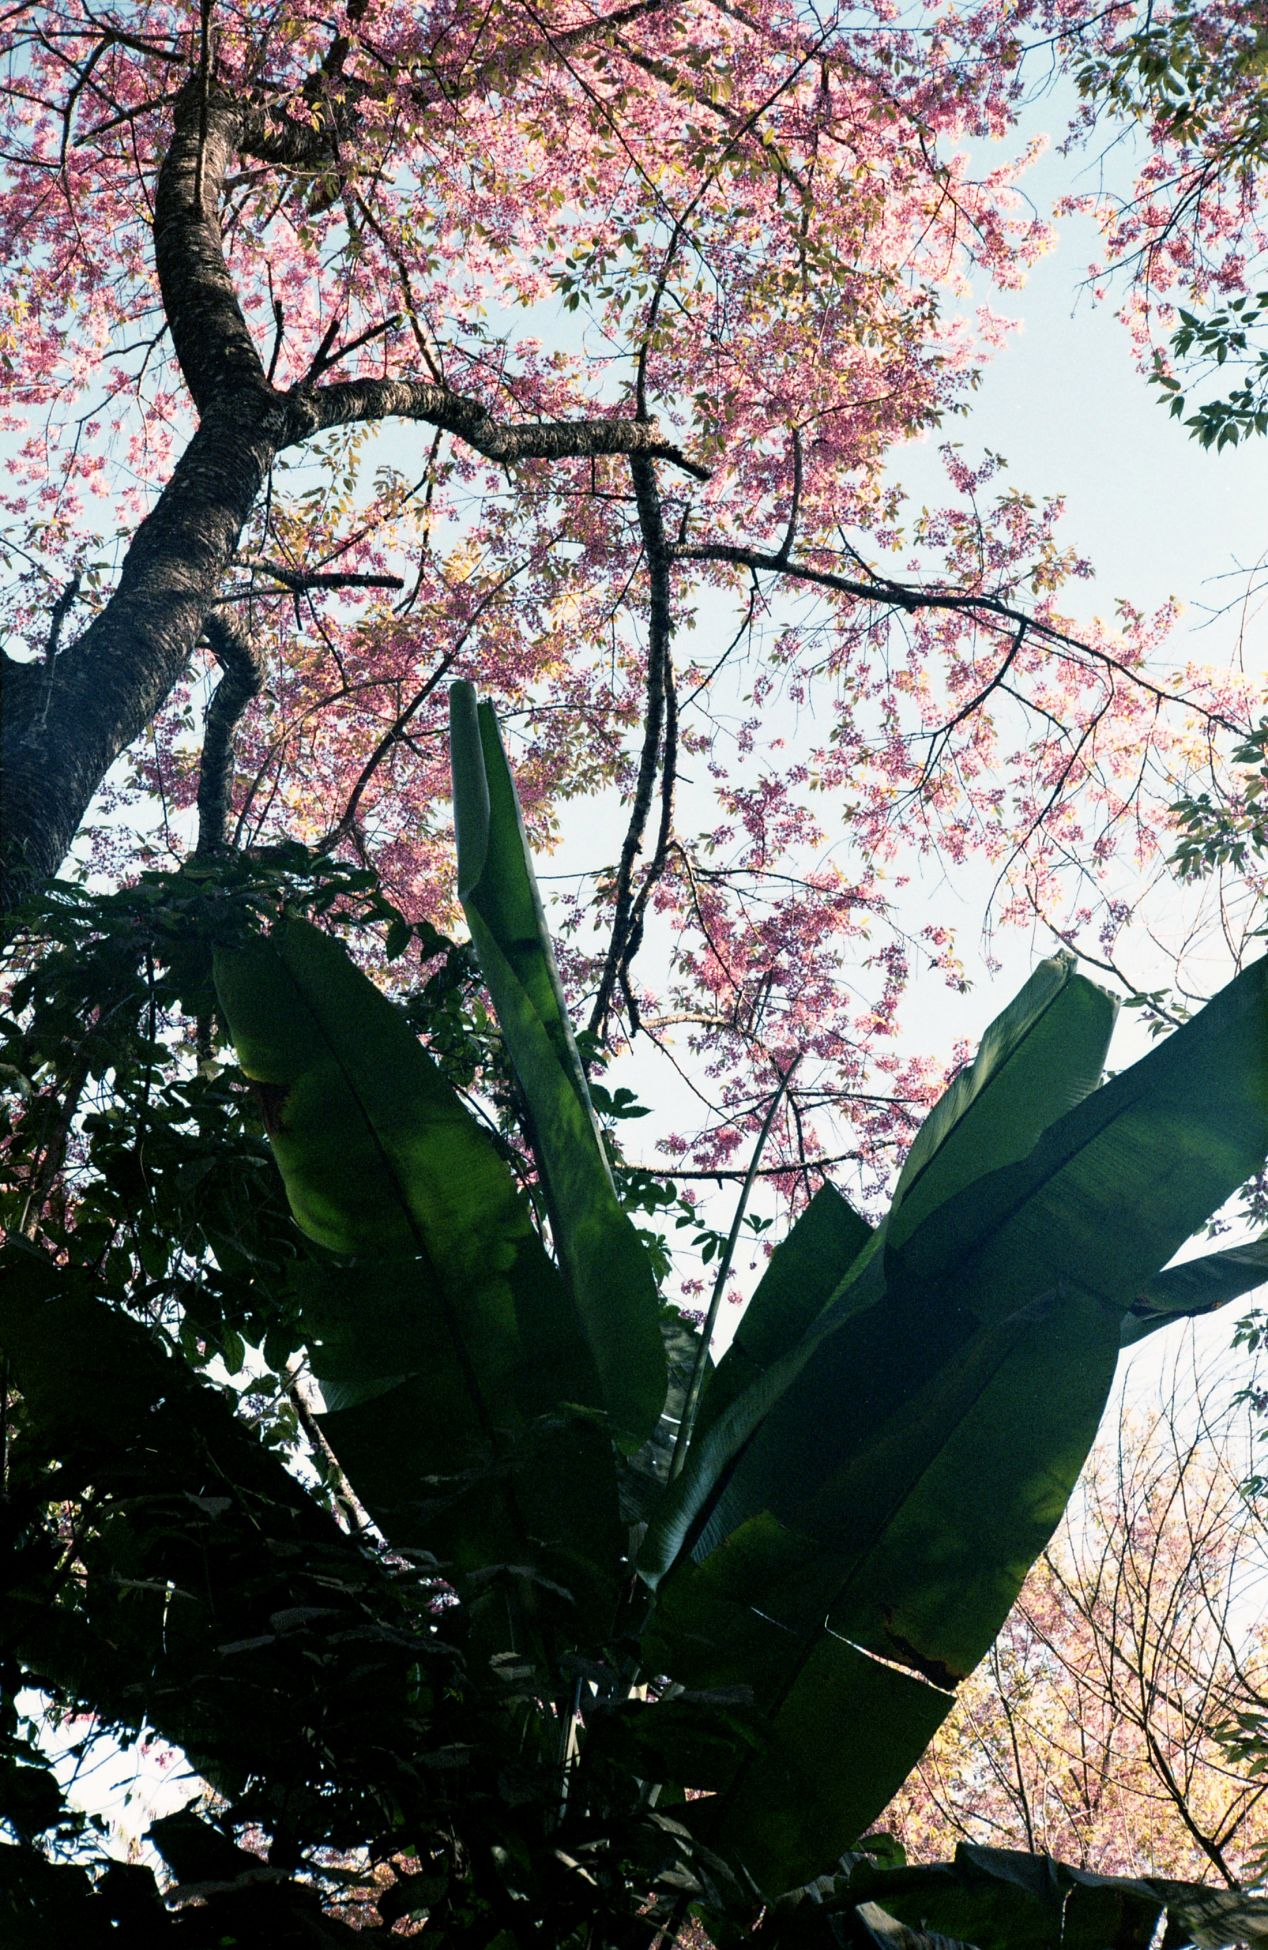 Cherry blossoms bloom every February at the top of Suthep mountain, alongside with banana trees and coffee plants.